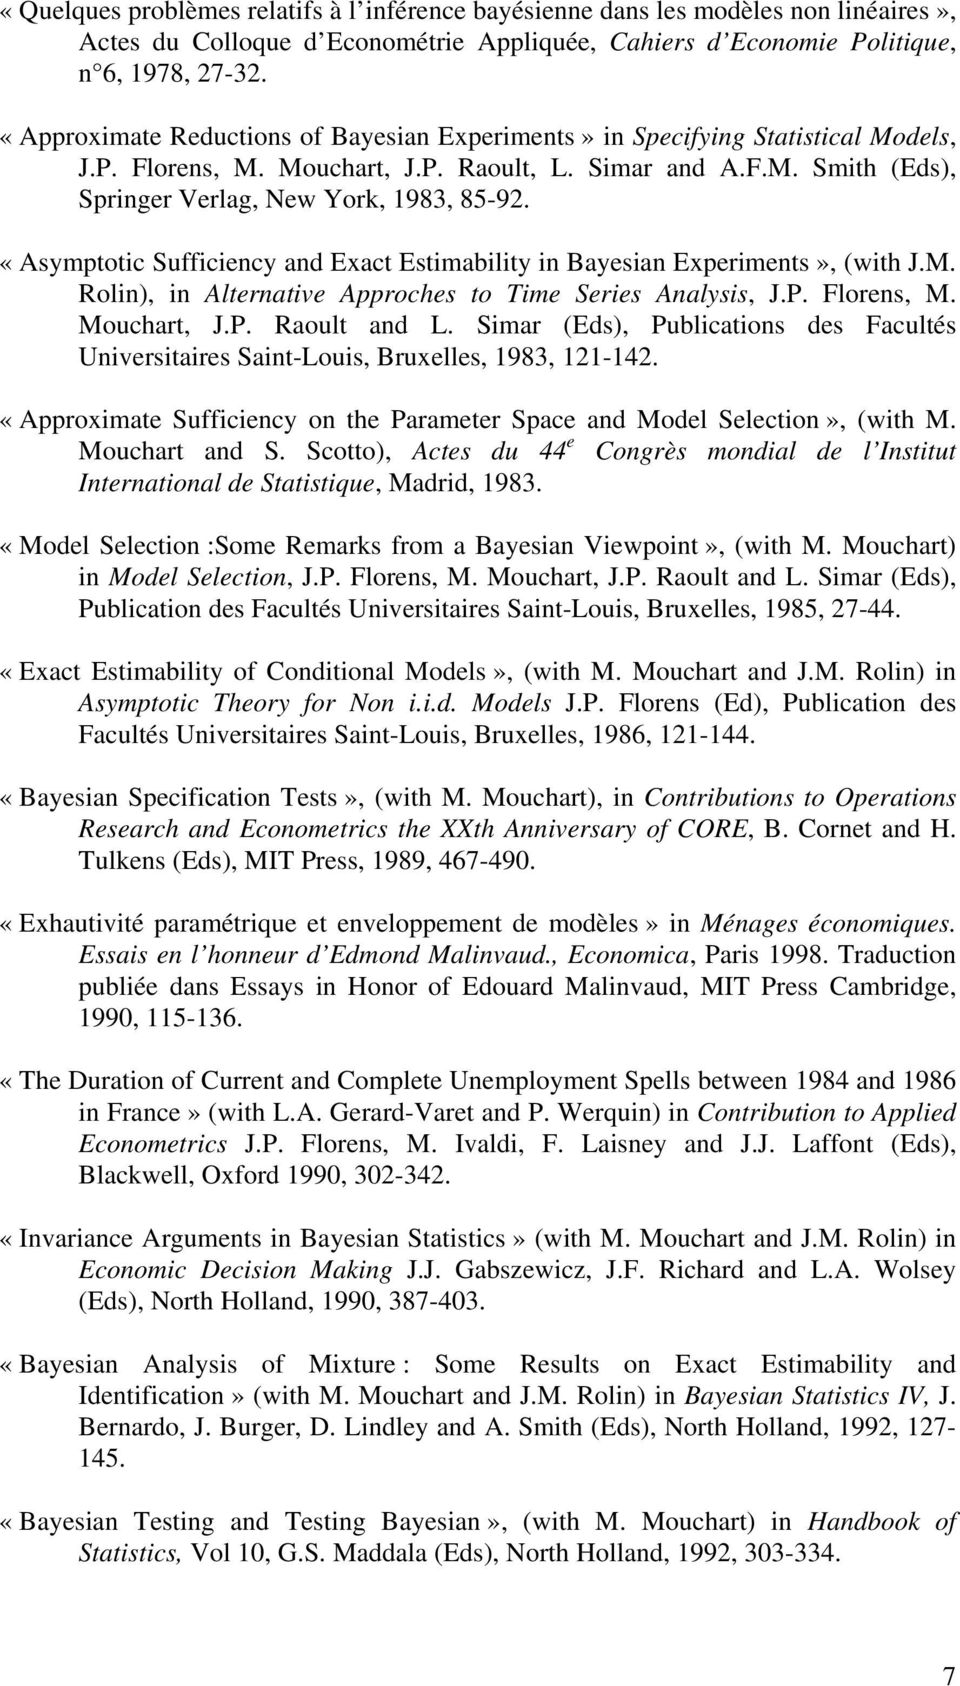 «Asymptotic Sufficiency and Exact Estimability in Bayesian Experiments», (with J.M. Rolin), in Alternative Approches to Time Series Analysis, J.P. Florens, M. Mouchart, J.P. Raoult and L.